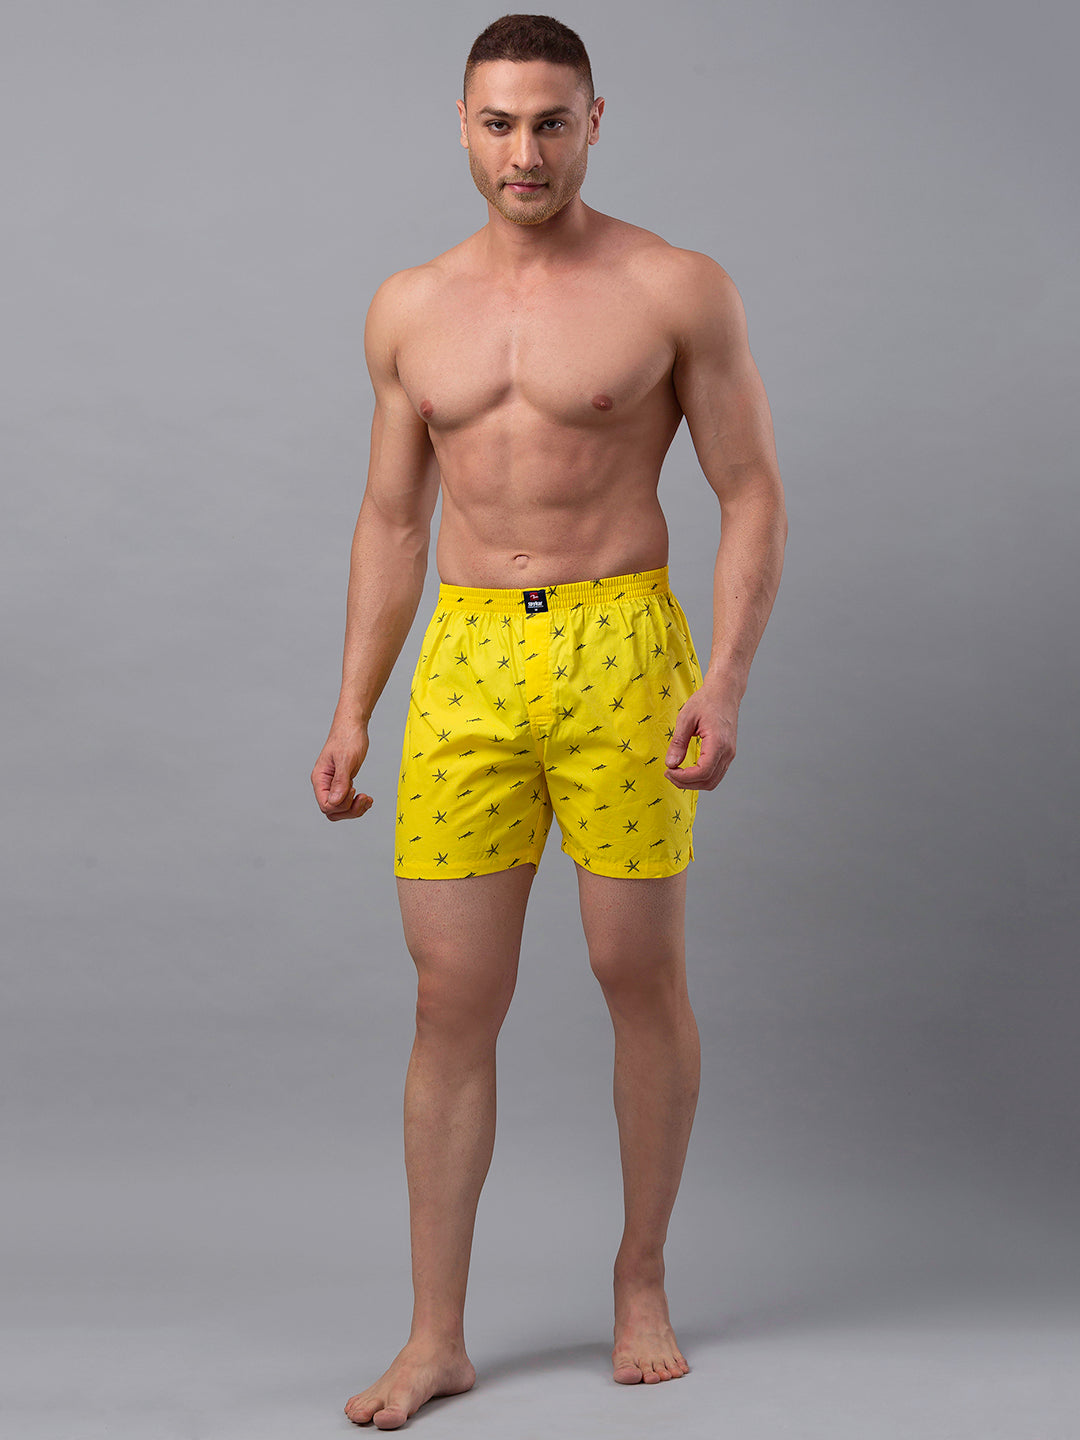 Underjeans Yellow Cotton Boxers - Pack of 2